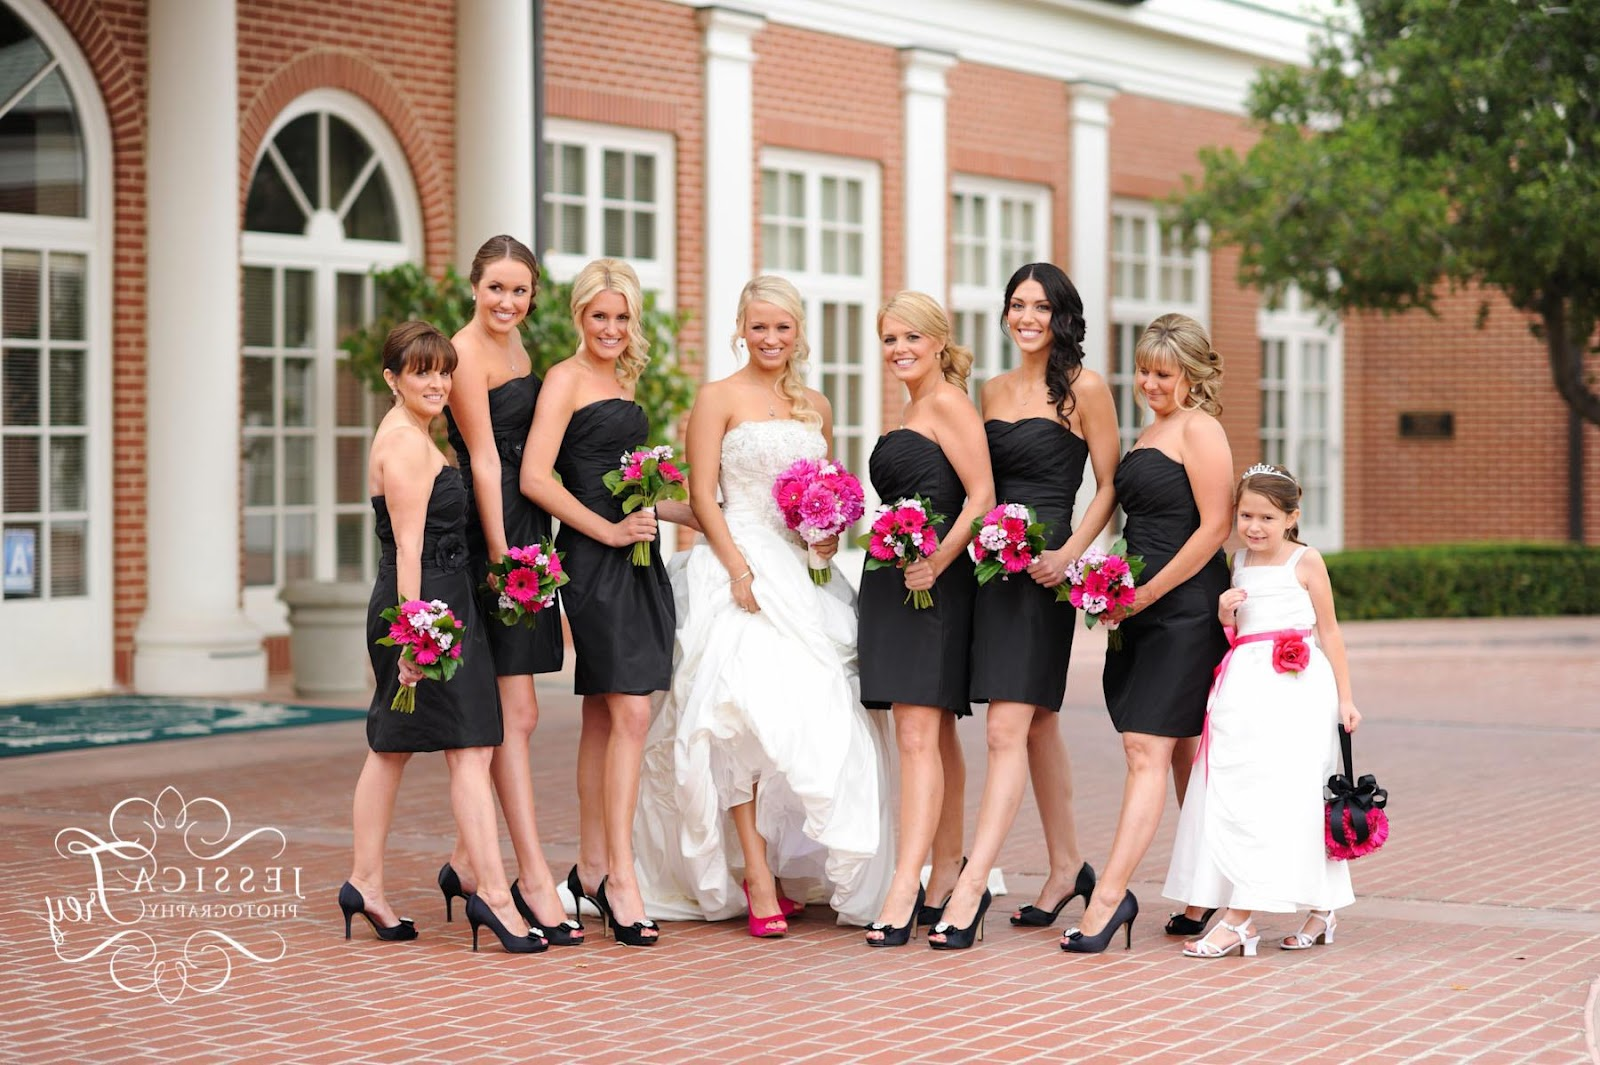 Short Black bridesmaid dresses with hot pink bouquet and black heels: